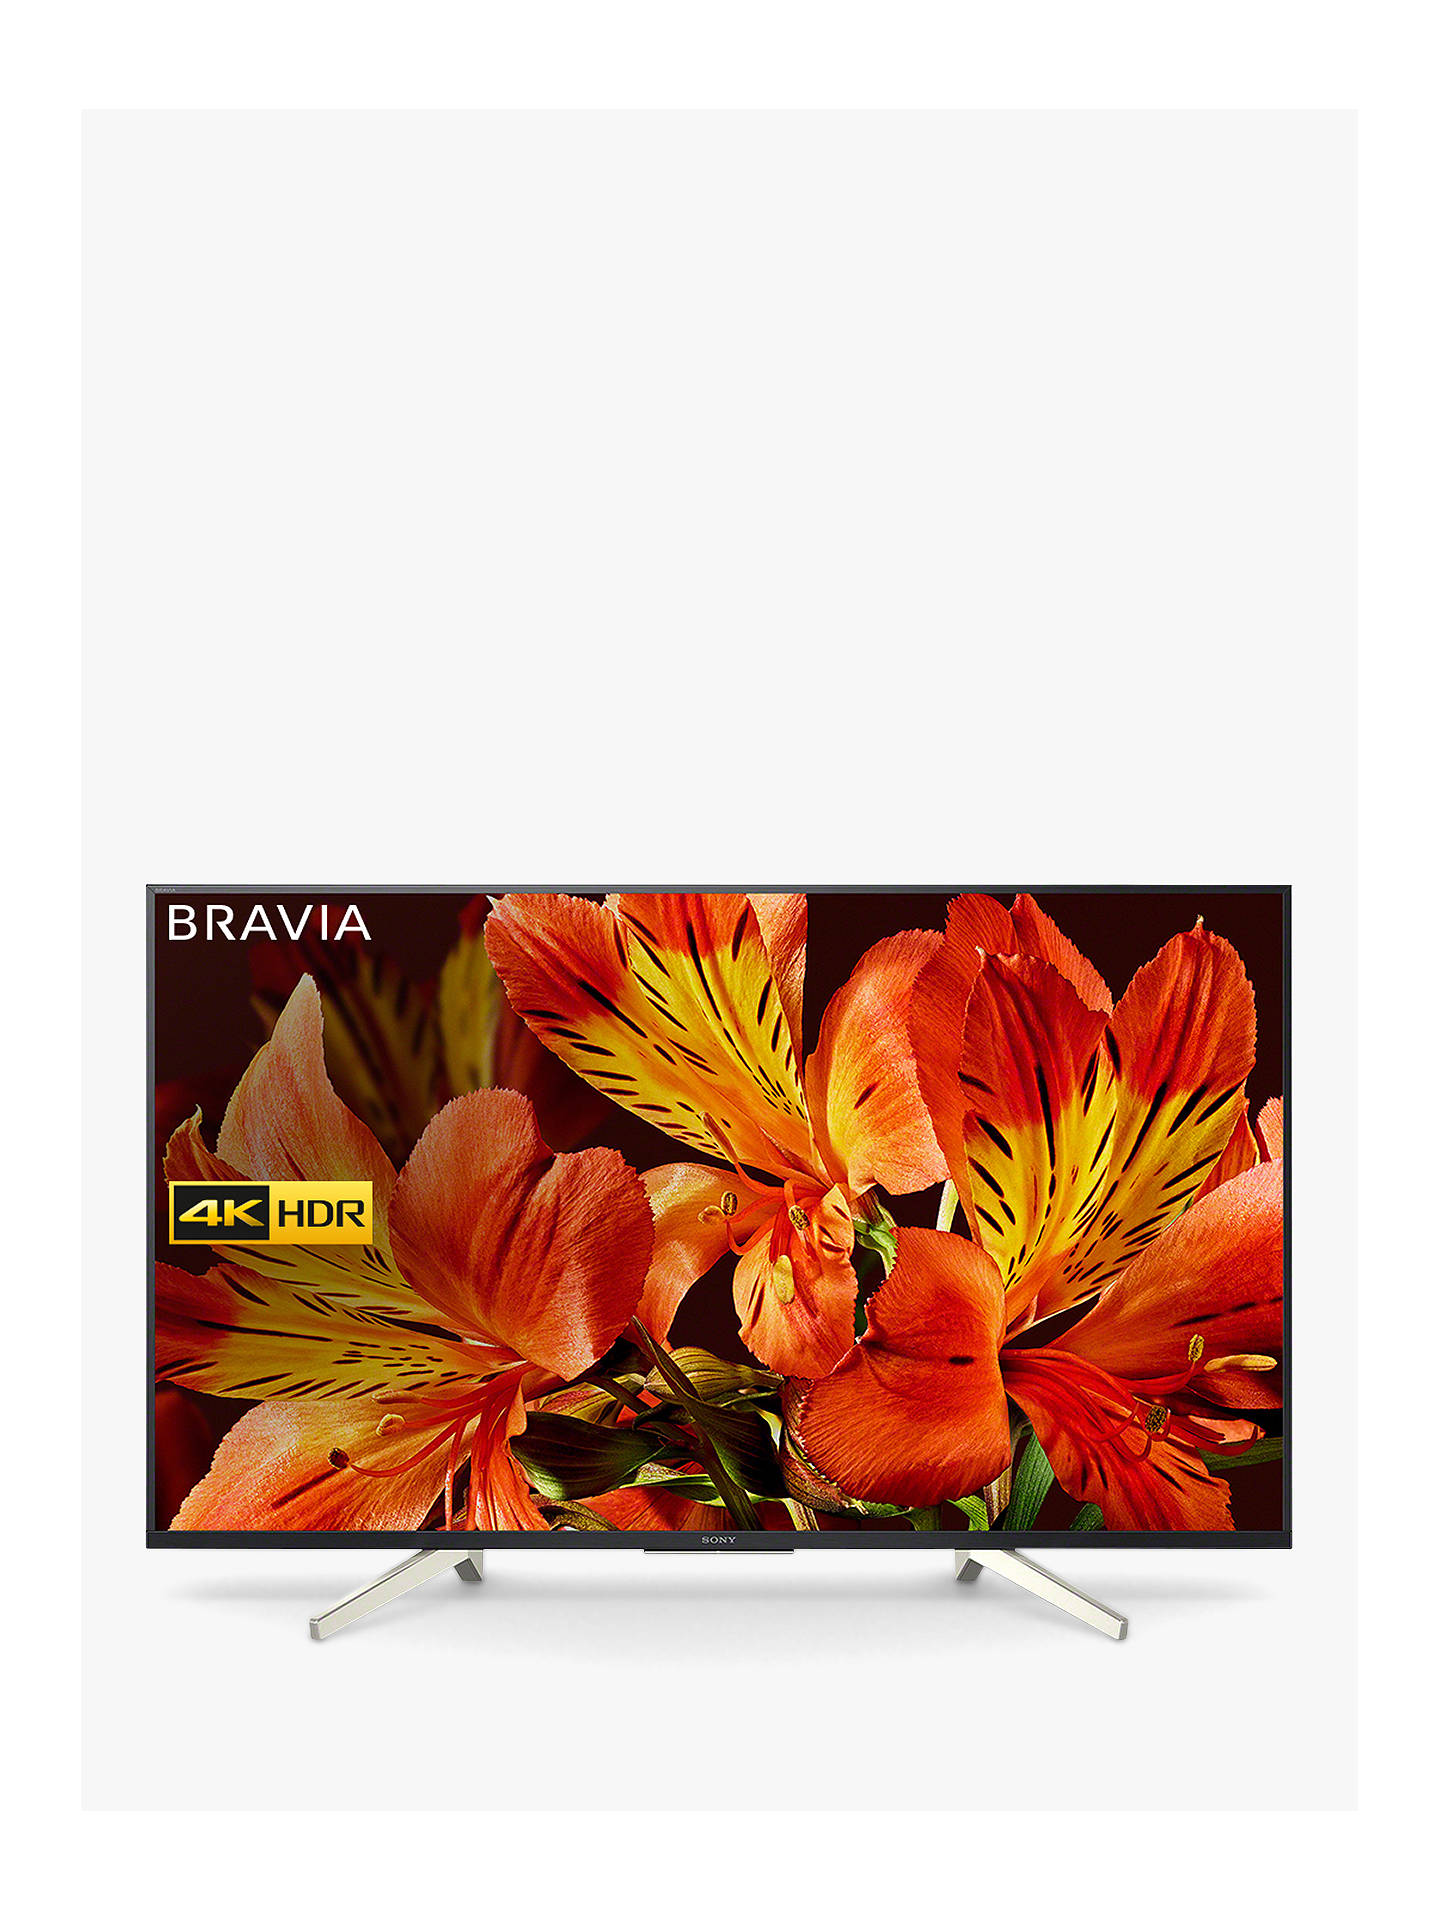 Sony Bravia KD75XF8596 LED HDR 4K Ultra HD Smart Android TV, 75